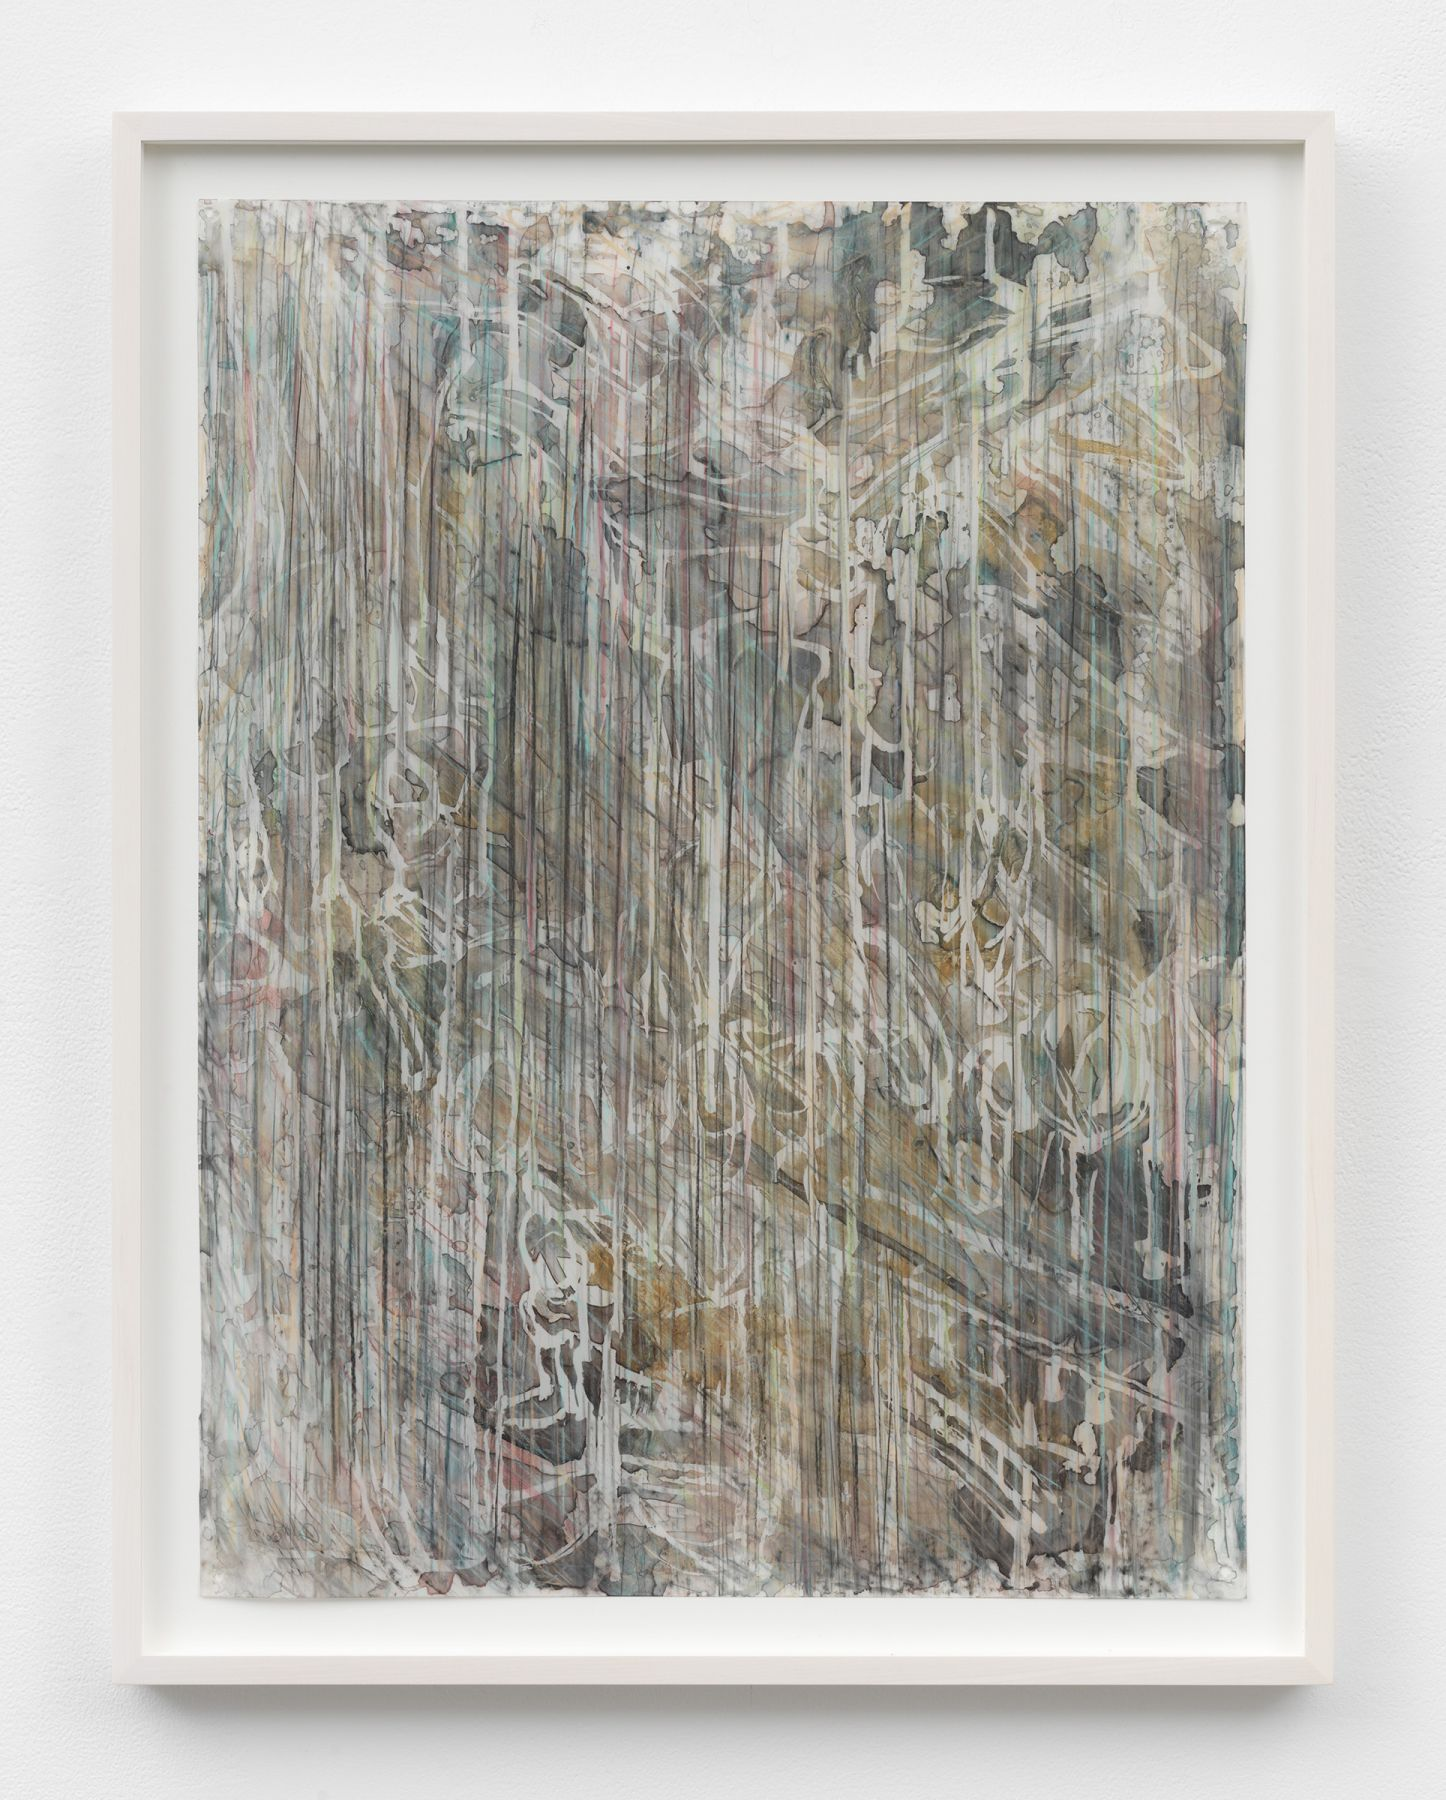 a work of art by Diana Al-Hadid for sale